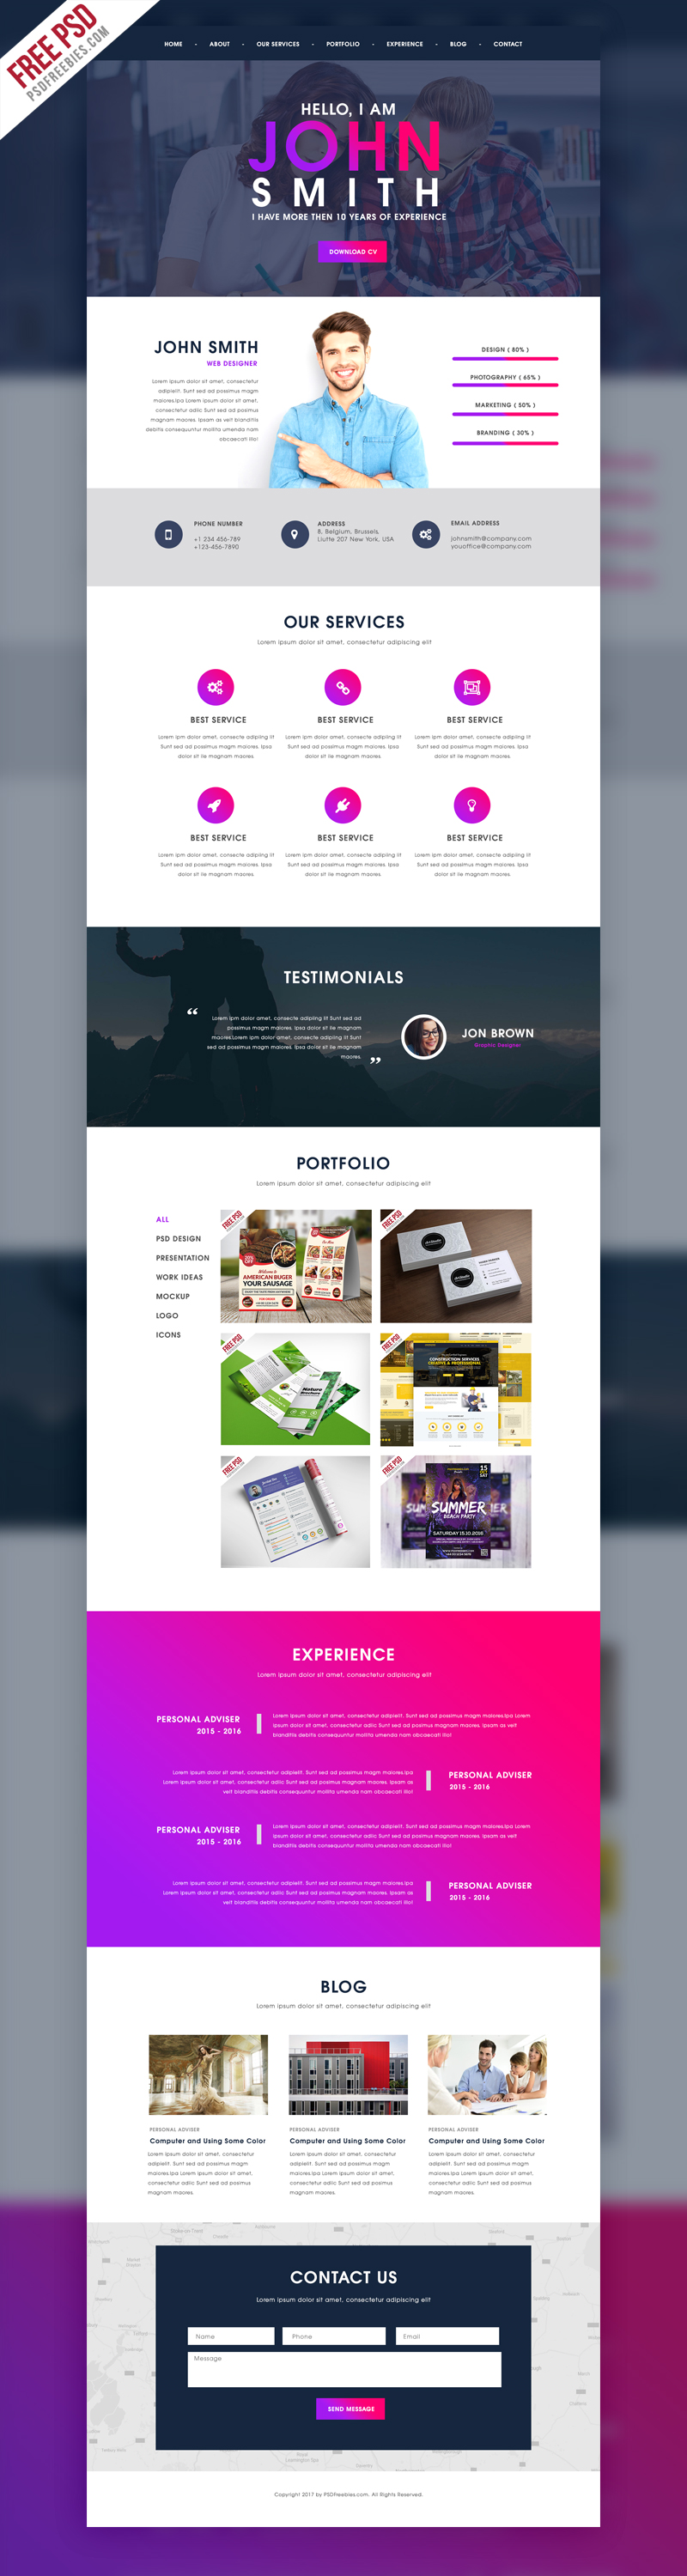 Creative one page portfolio website template free psd free web download creative one page portfolio website template free psd this is a minimal flat clean modern psd template for anyone who wants to build an maxwellsz